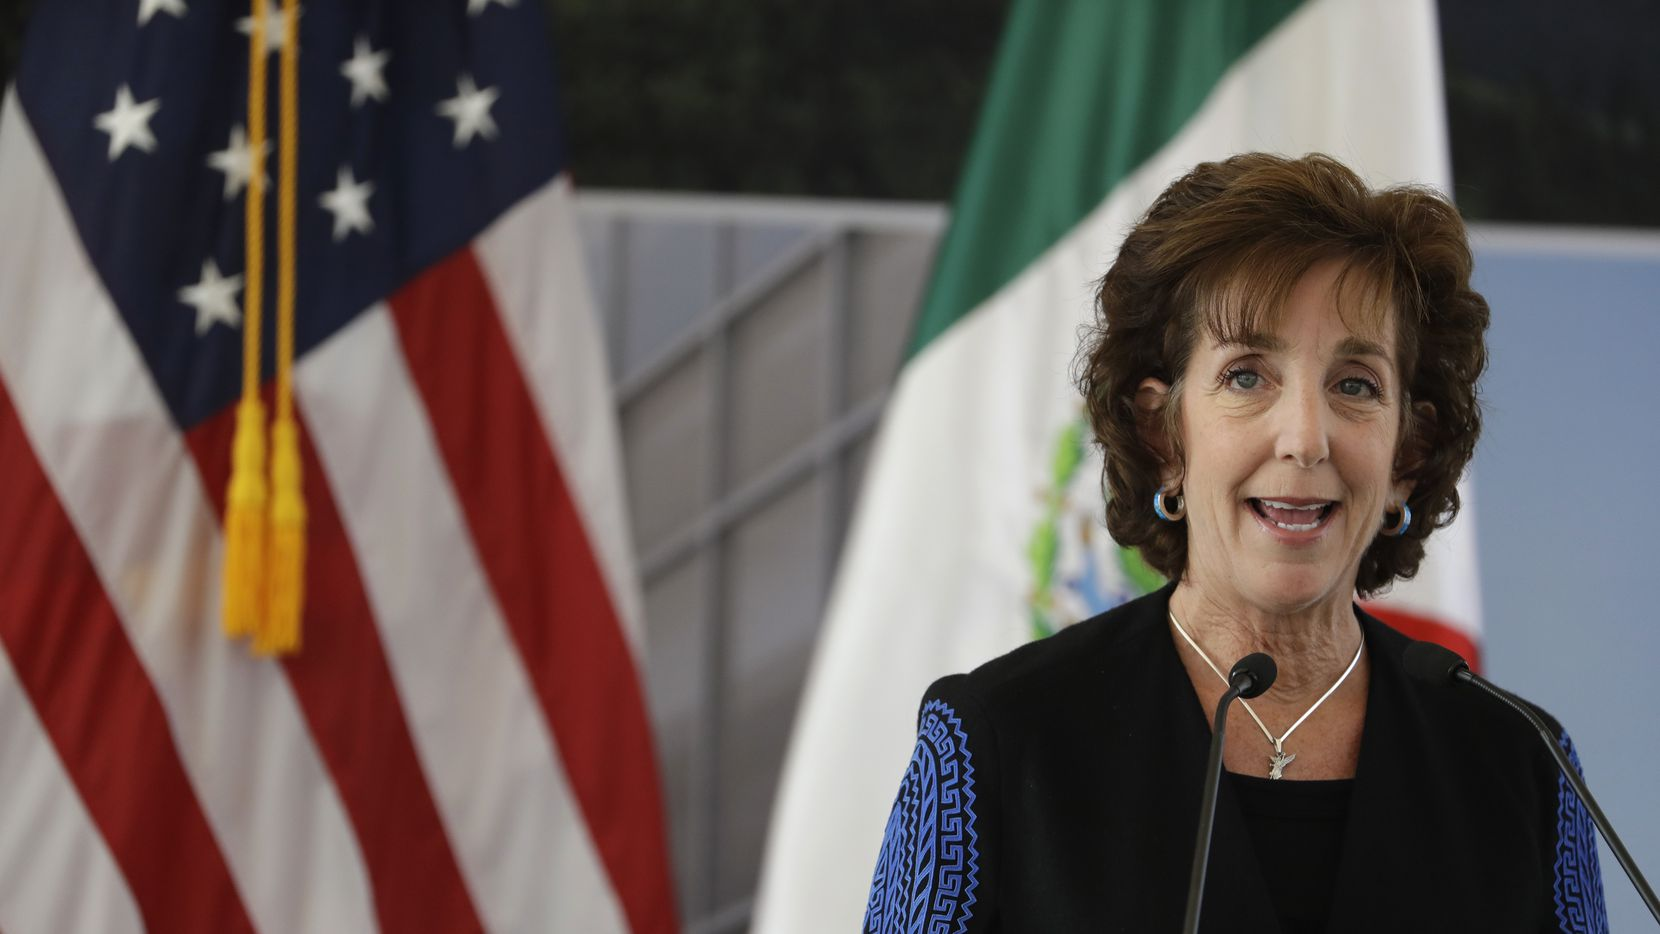 U.S. Ambassador to Mexico Roberta Jacobson speaks during the groundbreaking ceremony for the new U.S. embassy.